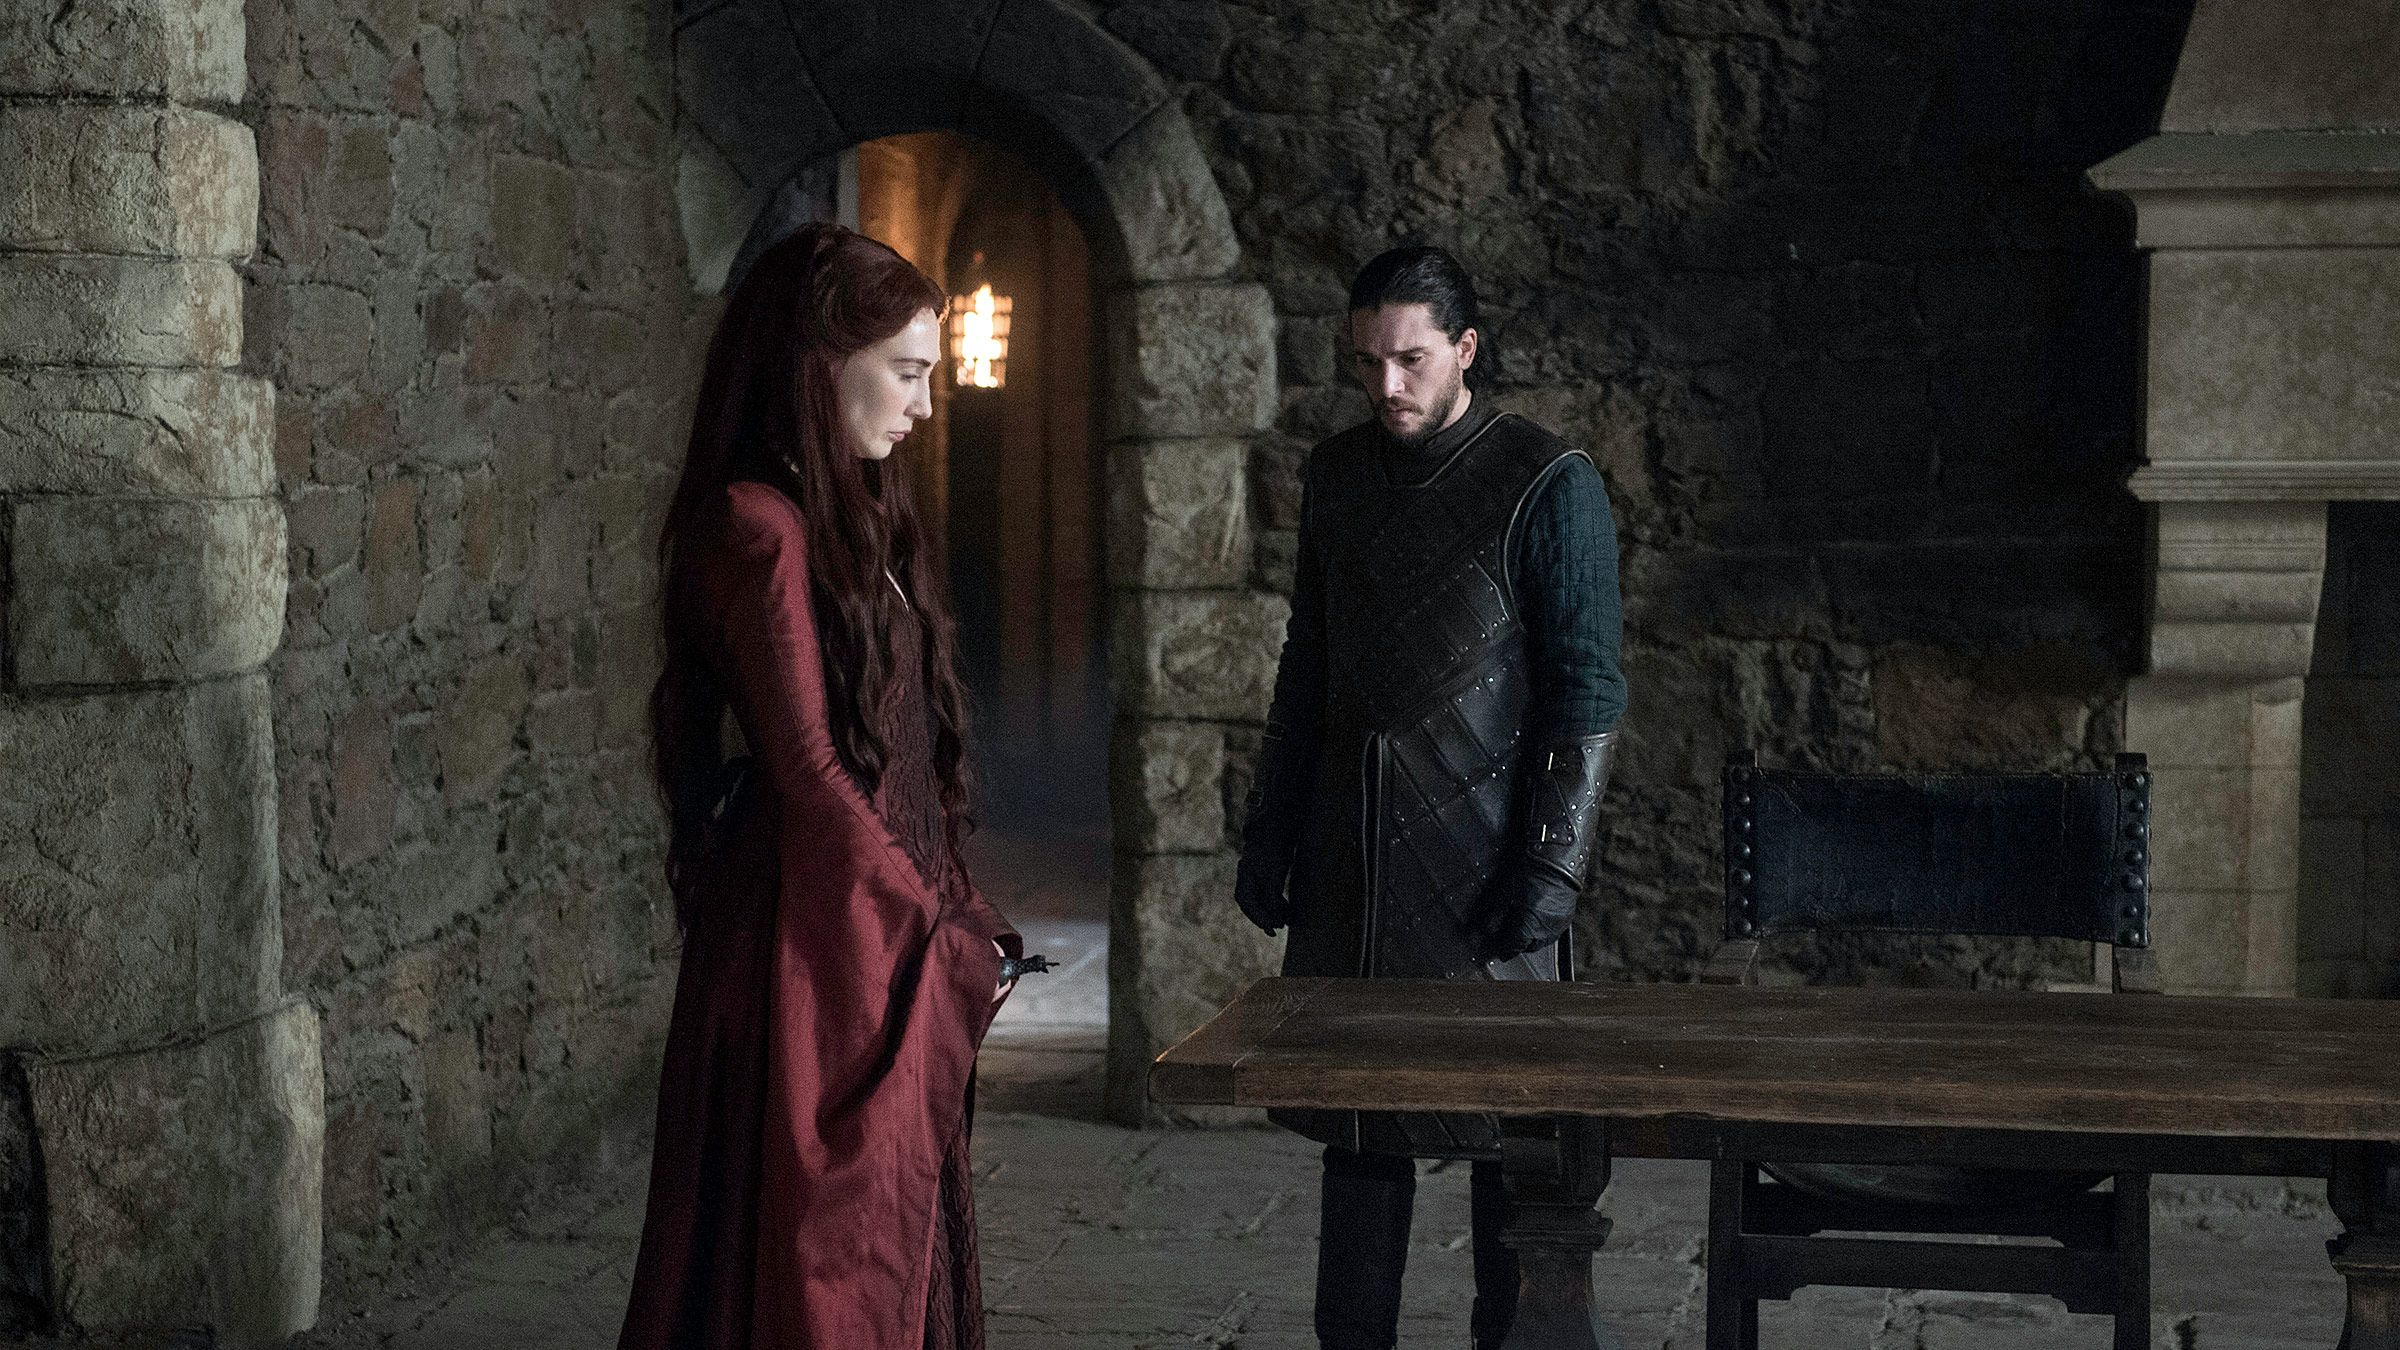 Game of Thrones Viewer's Guide - Season 6, Episode 10